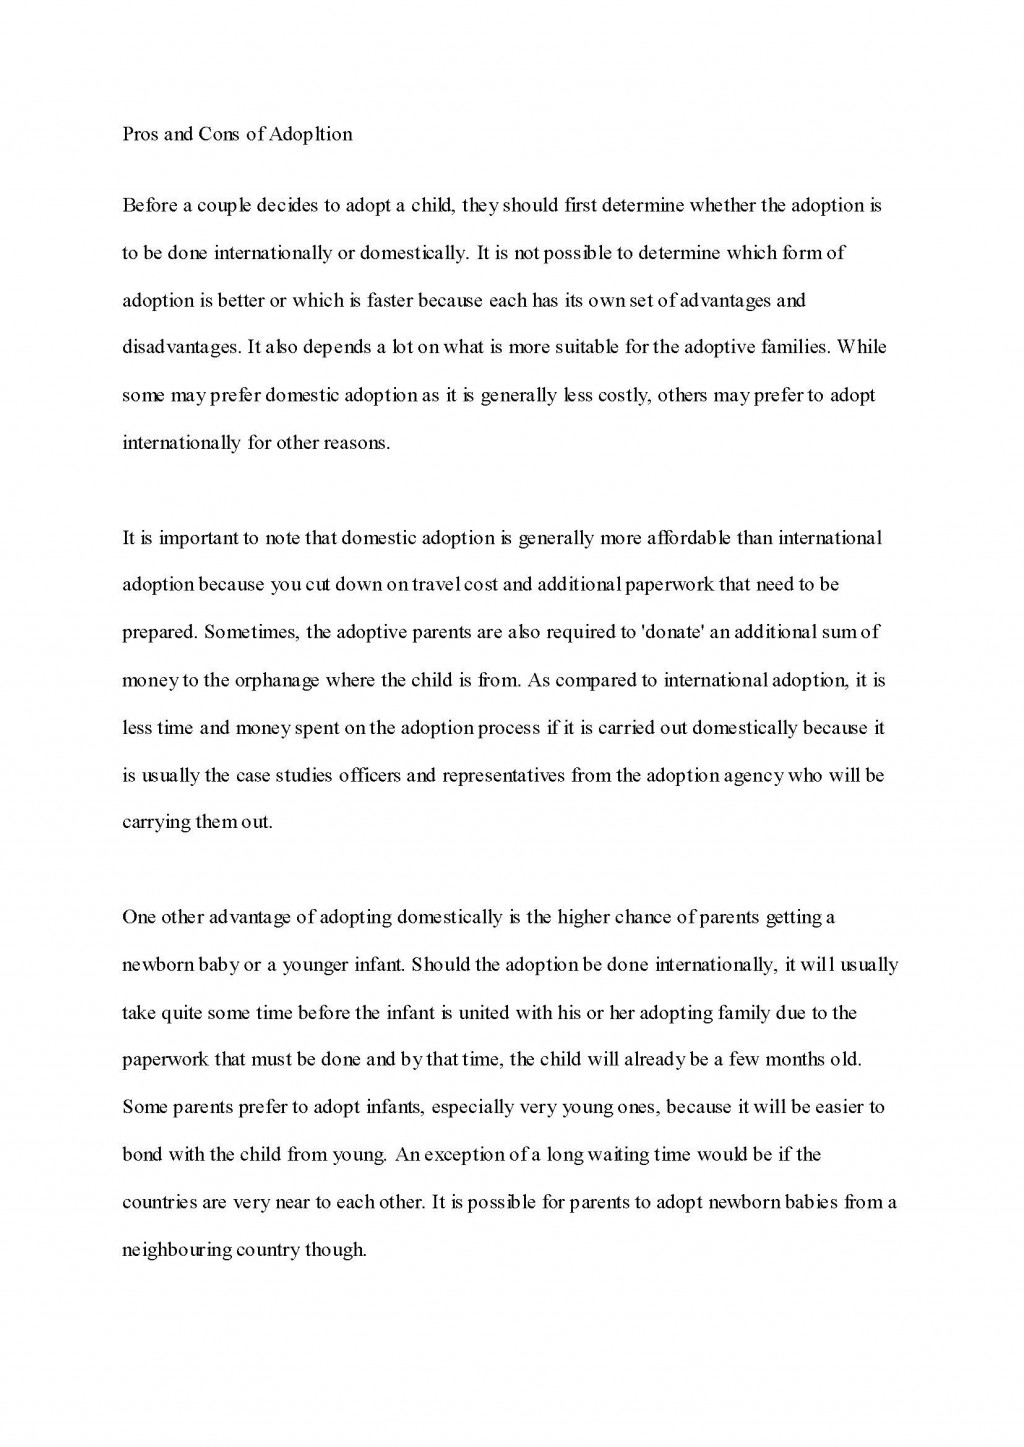 020 Examples Of Persuasive Essay Adoption Sample Incredible A Example Argumentative Bullying About Anti For 5th Grade Large